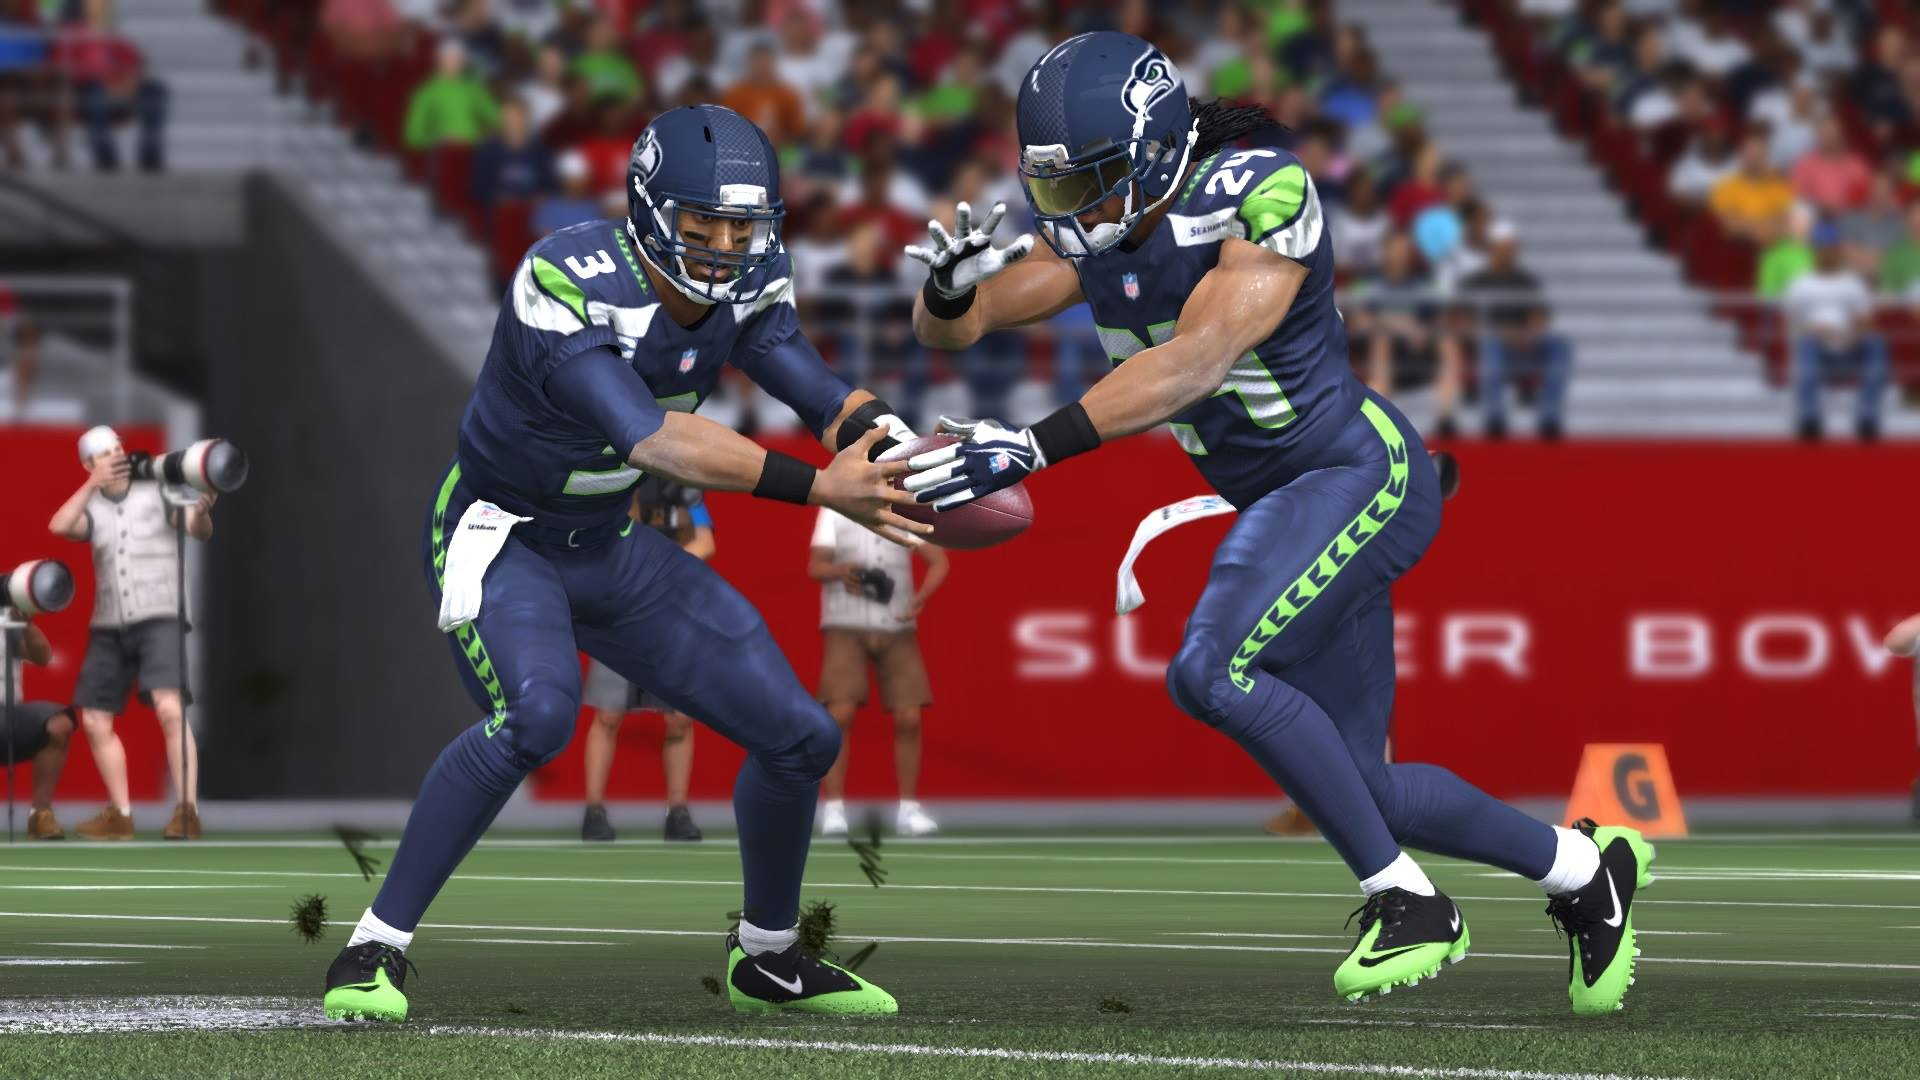 Super Bowl XLIX - Russell Wilson and Marshawn Lynch